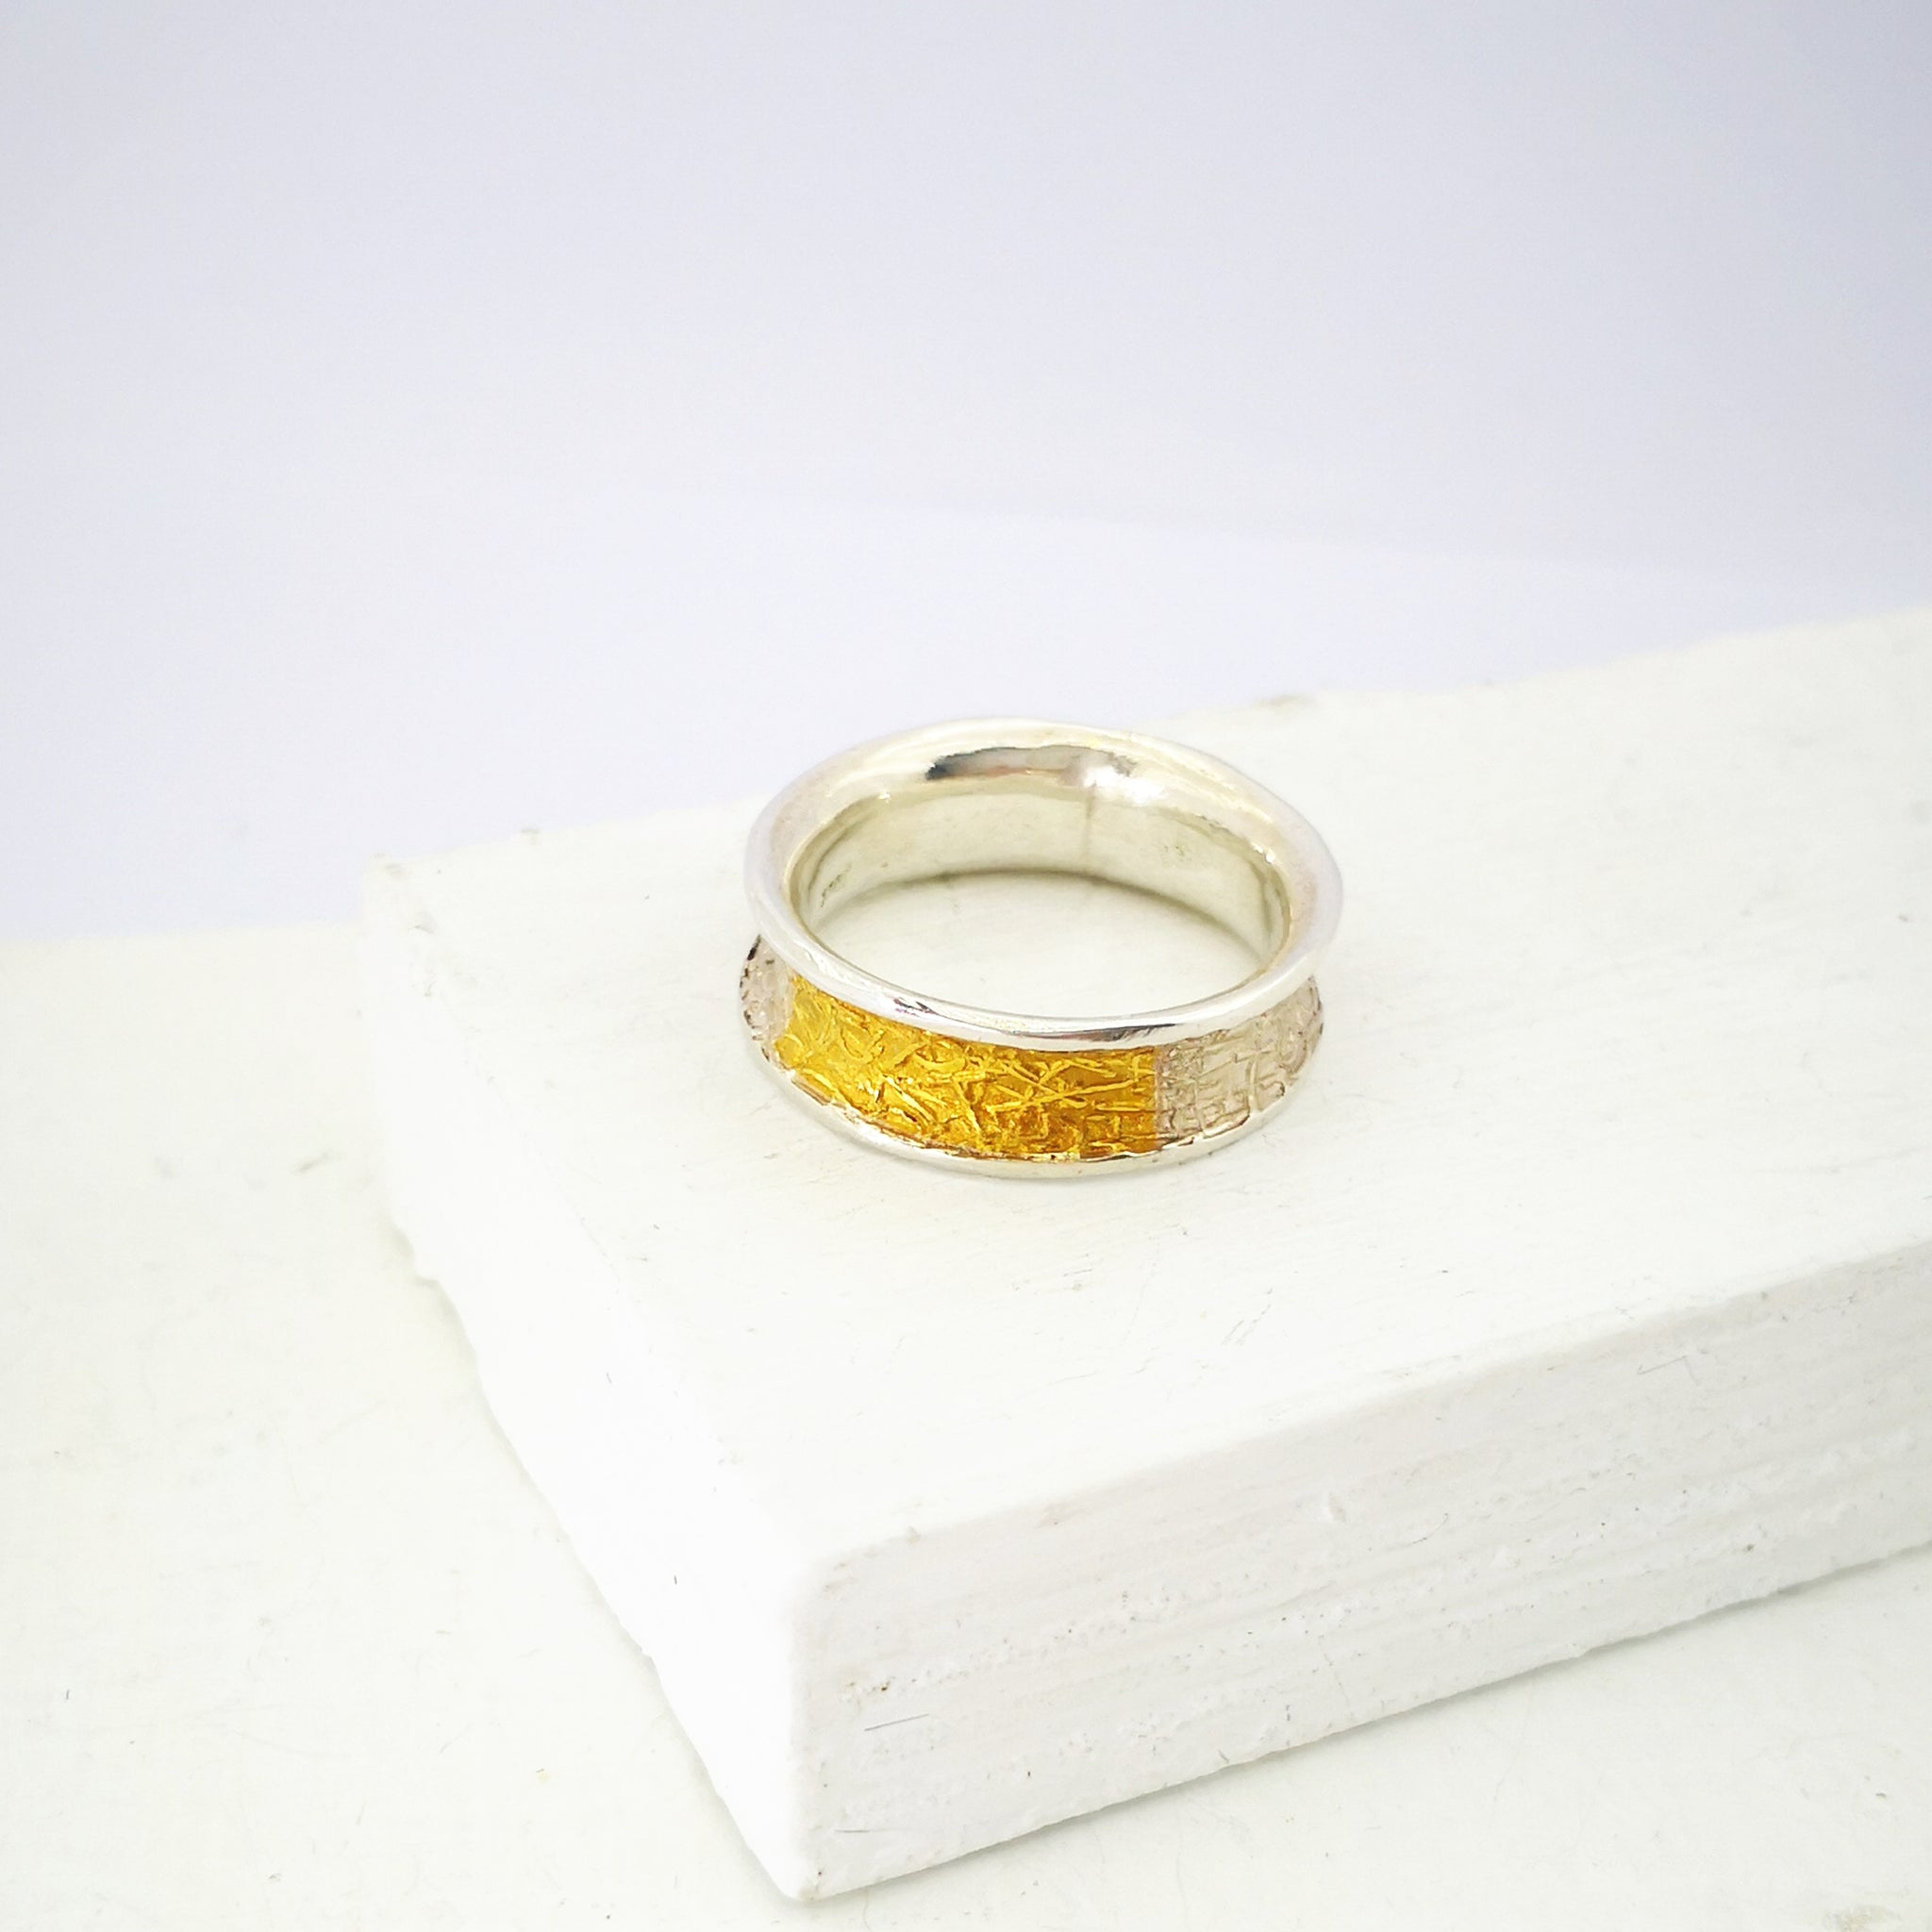 TEXT-ure Ring #3 by David McLeod